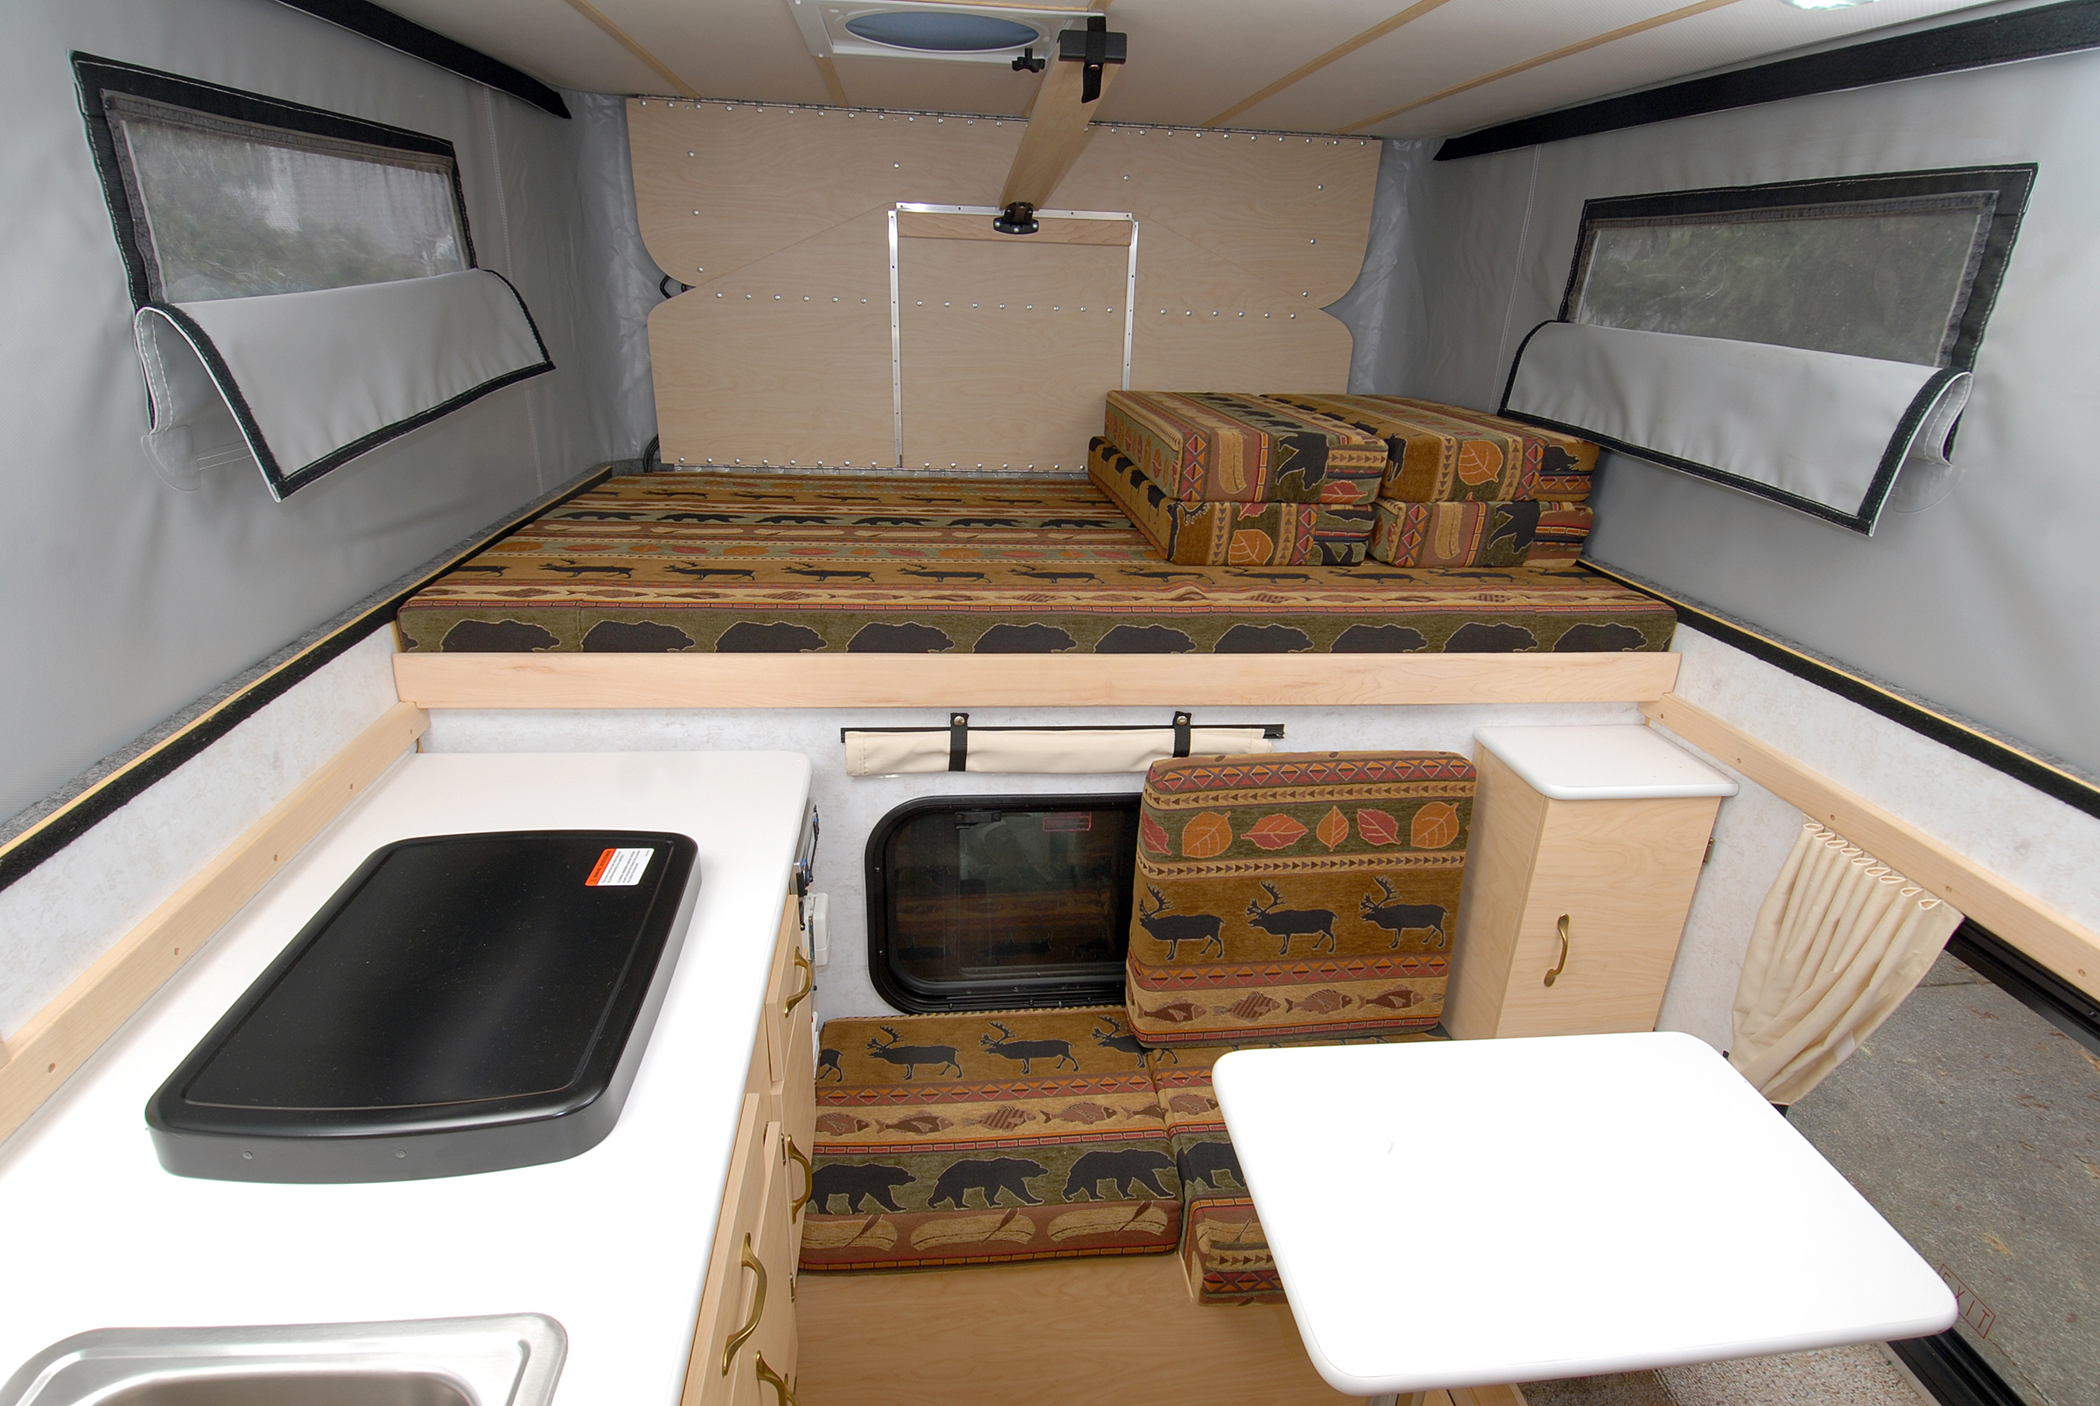 Living With A Small RV The Fleet Has An 80 Inch Floor Length Is 75 Inches Wide Overall And Approximate 20 X 60 Walkable Space